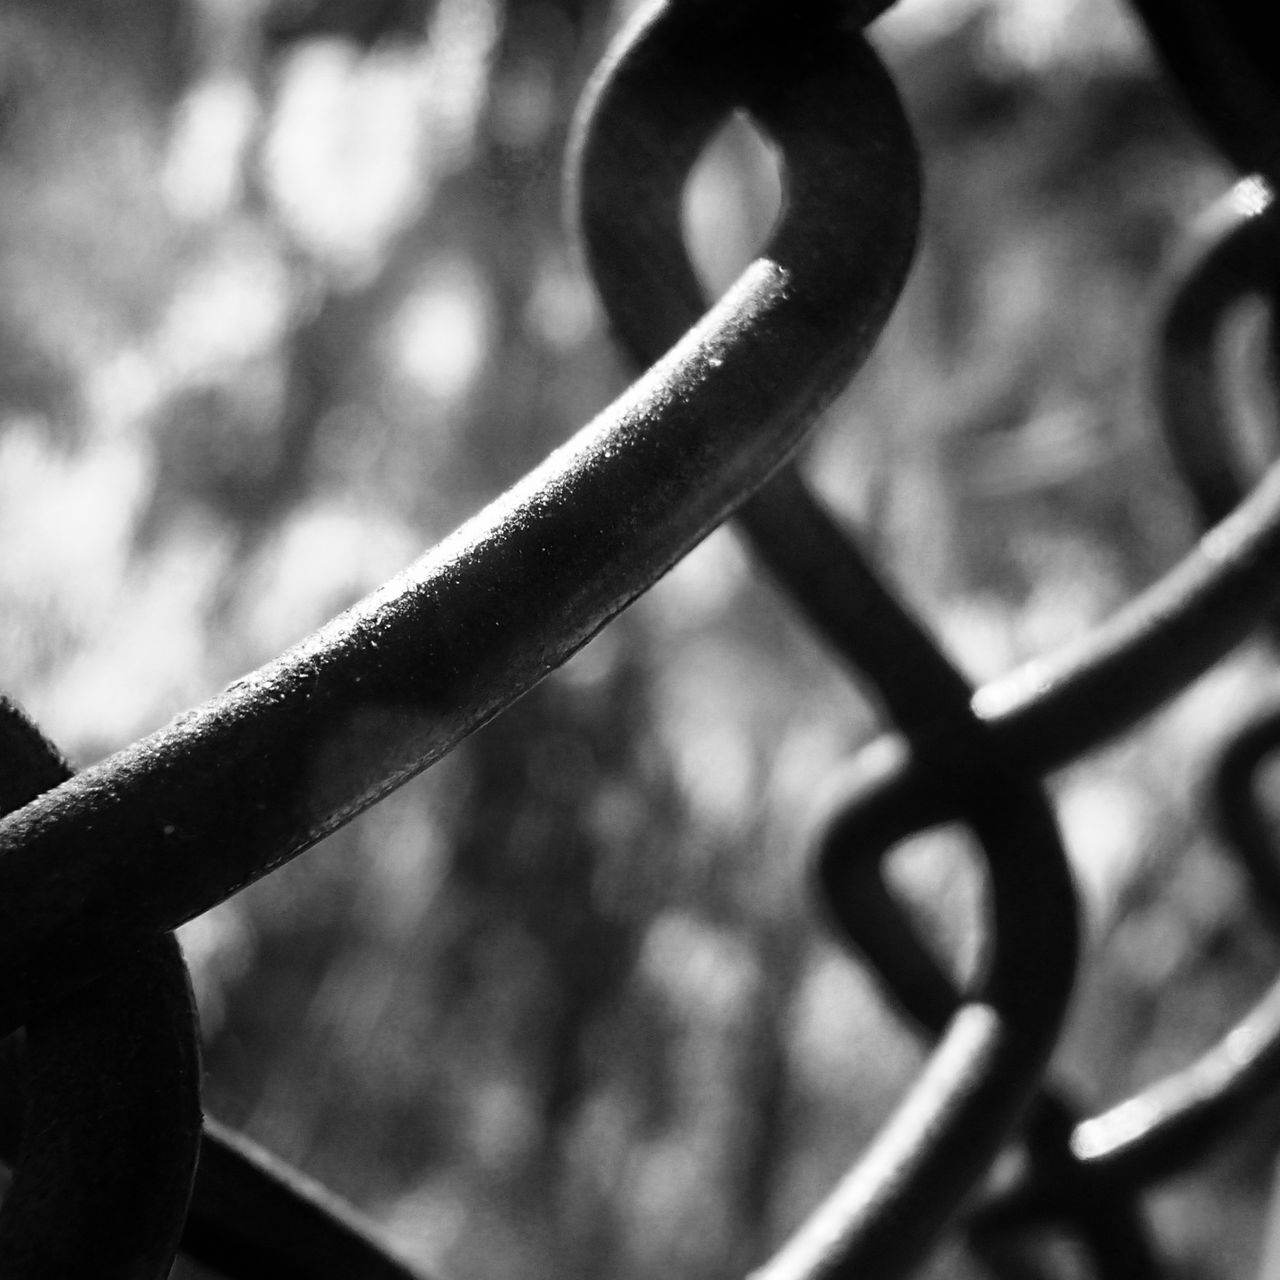 Close-up Extreme Close-up Fence Focus On Foreground Iron - Metal Link Linked Metal Wrought Iron